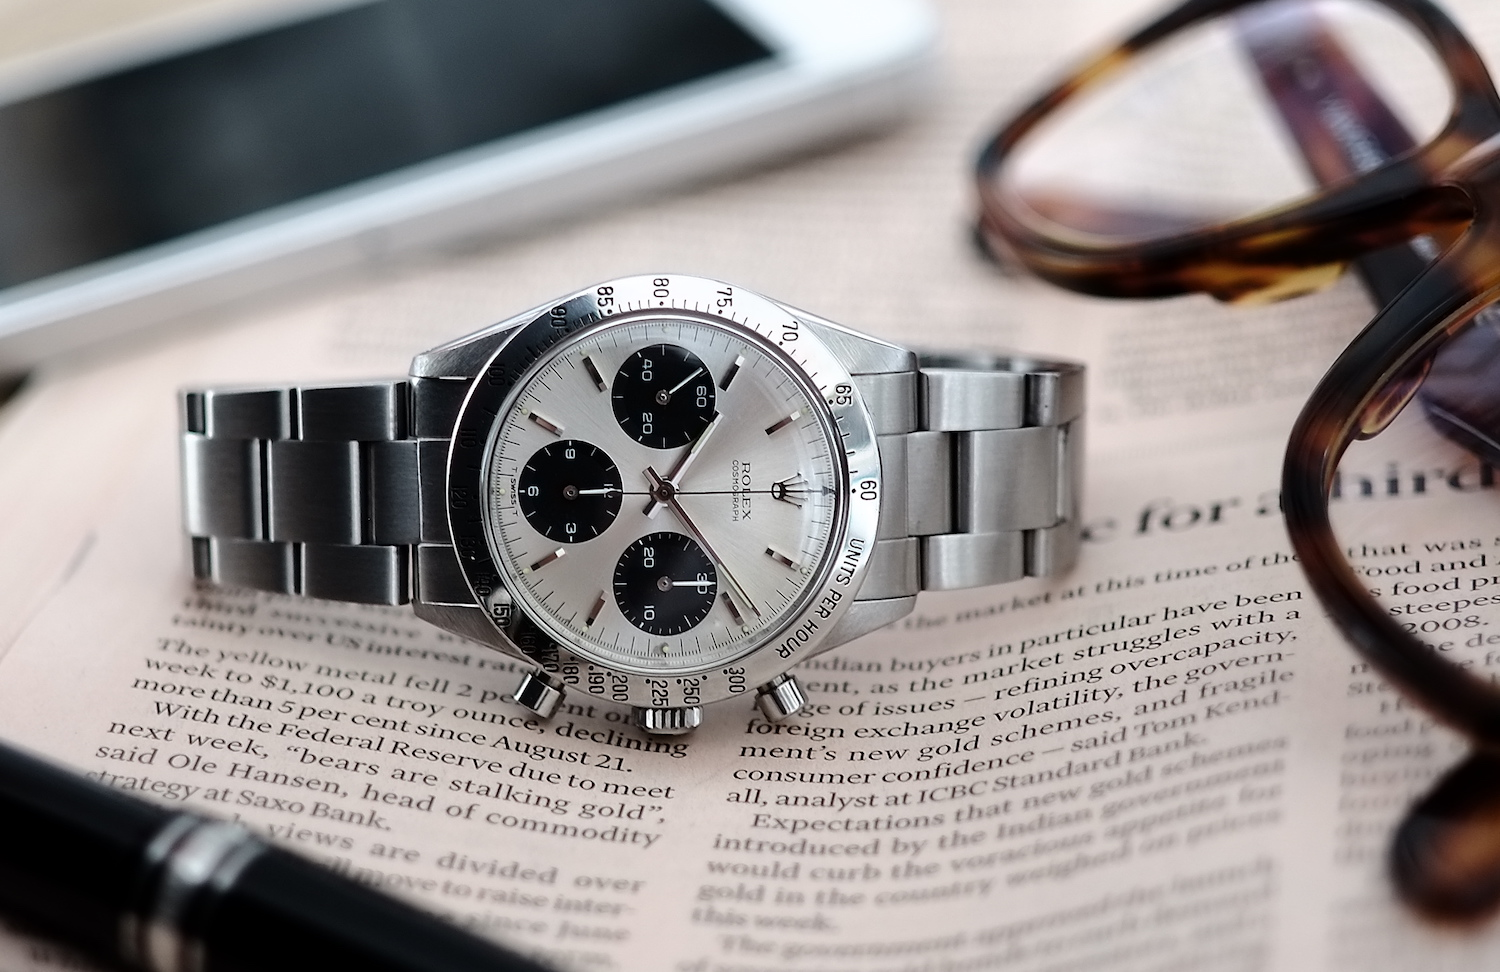 Rolex Daytona 6239 vintage early edition - Collectors Series - Kristian Haagen - 4